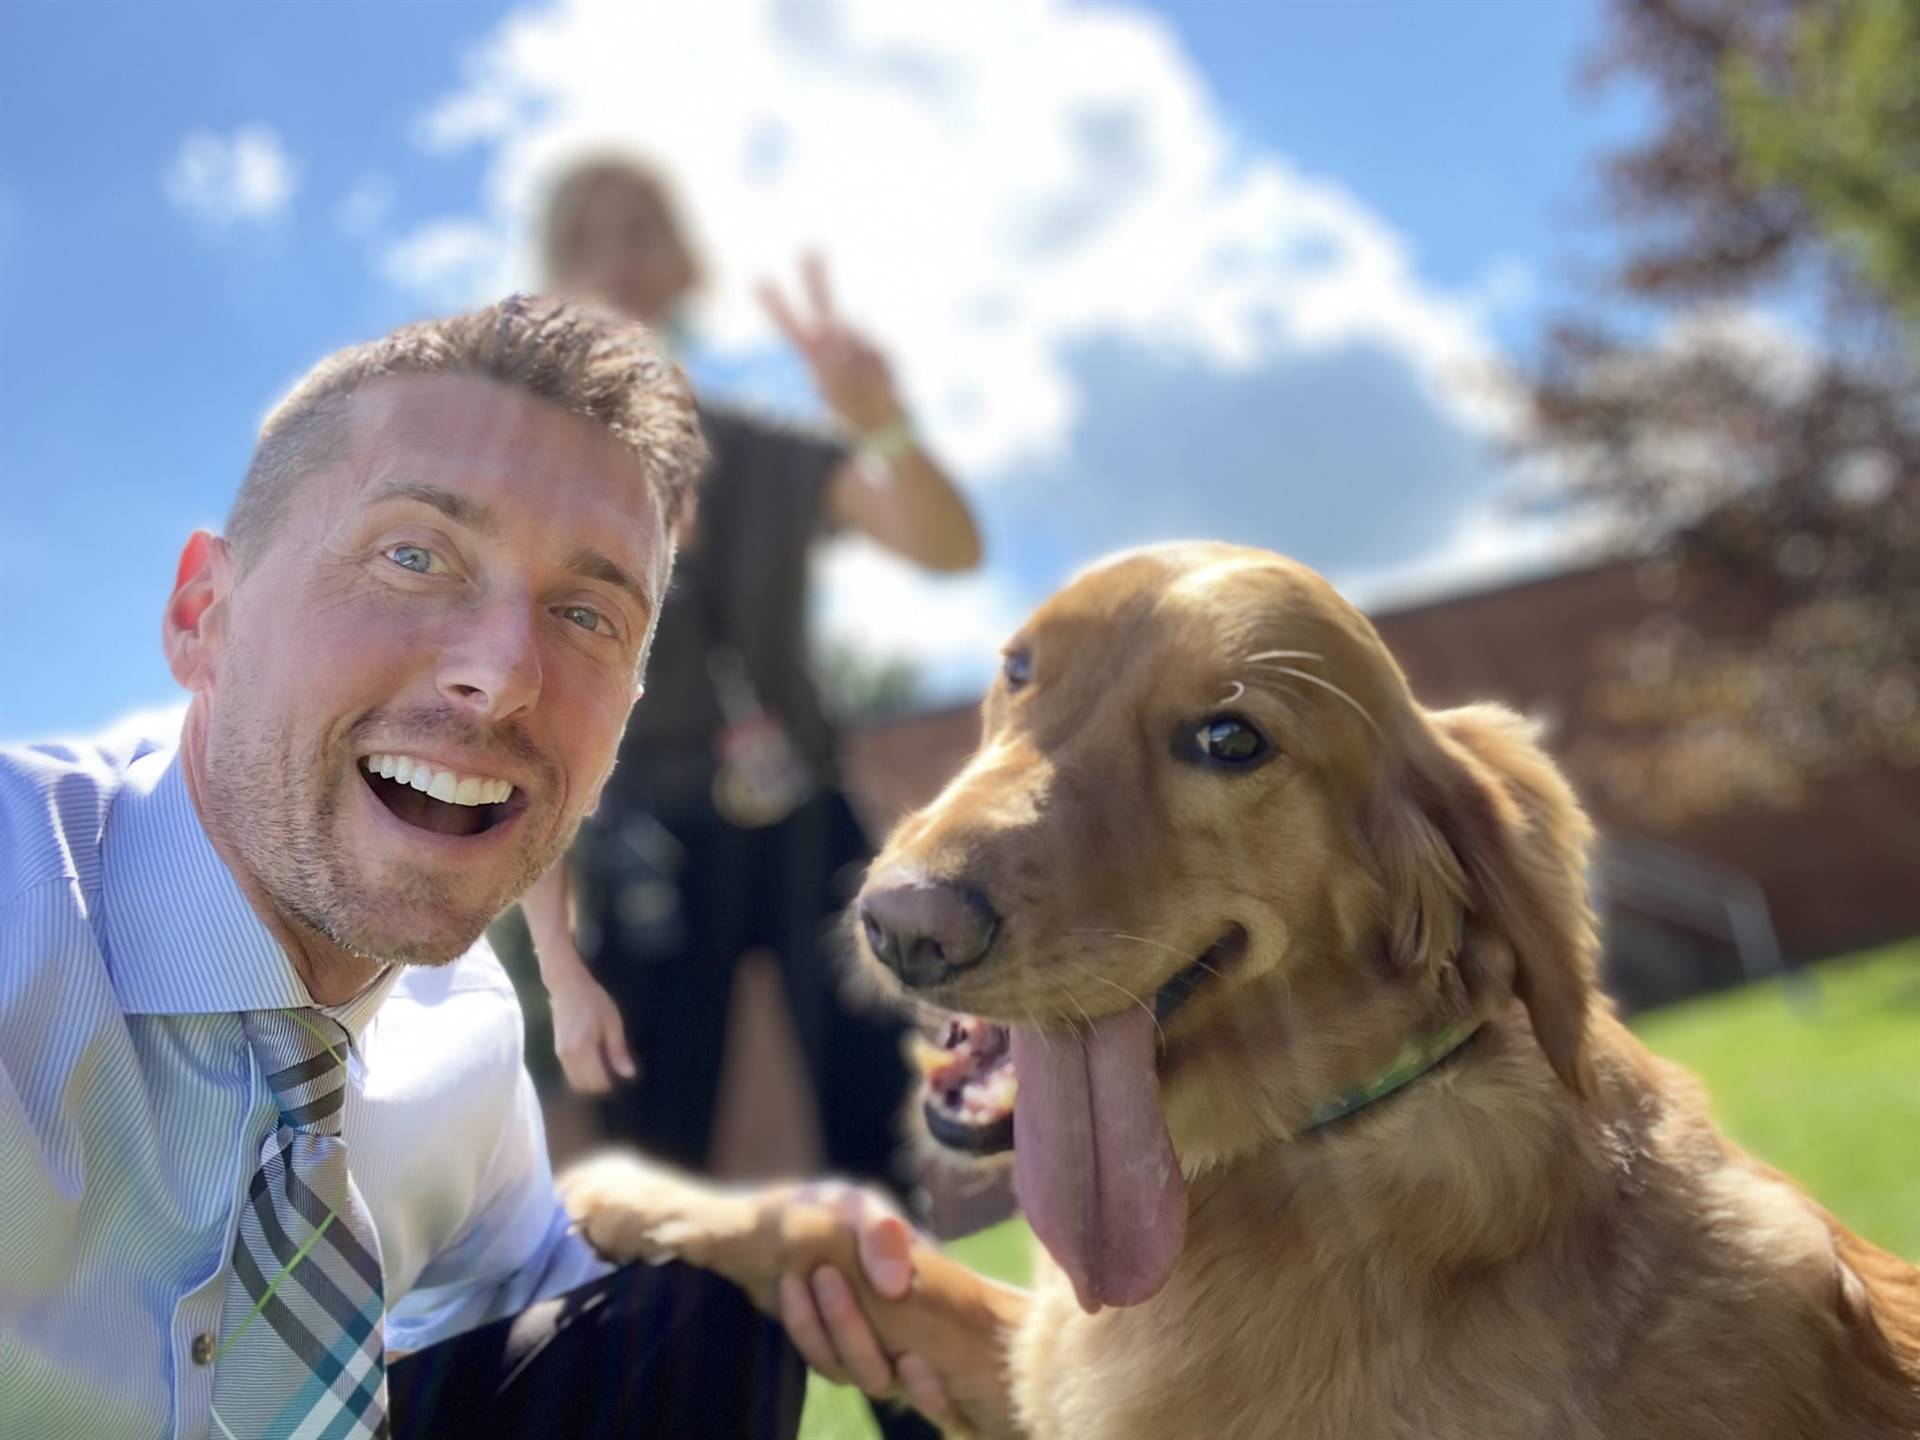 Photo 3:  Munson Principal Prezioso with Honey the Therapy Dog outside on the school grounds